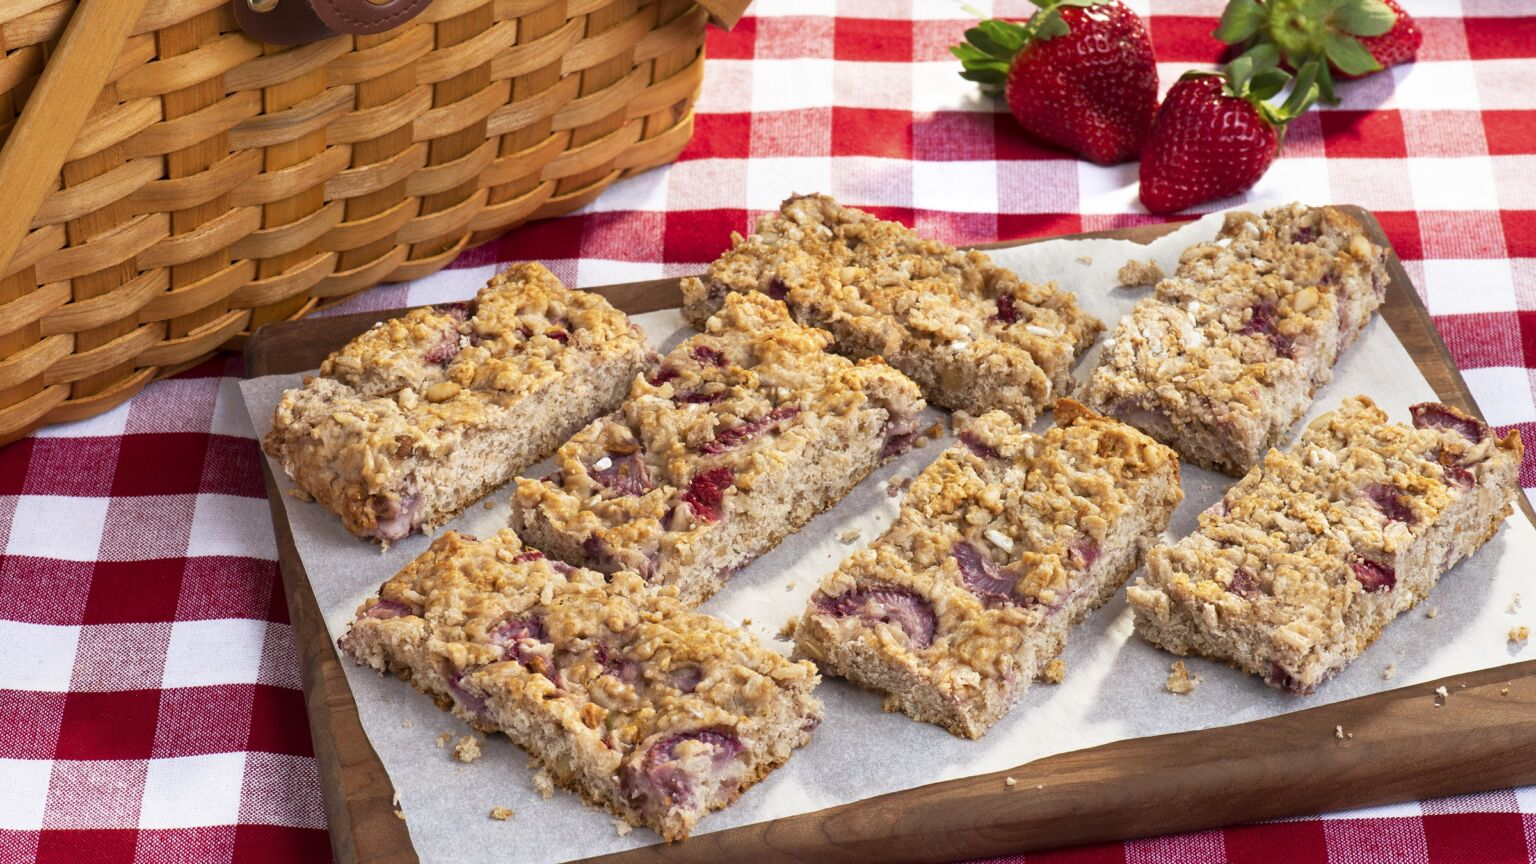 Pine Nut Strawberry Rice Bars